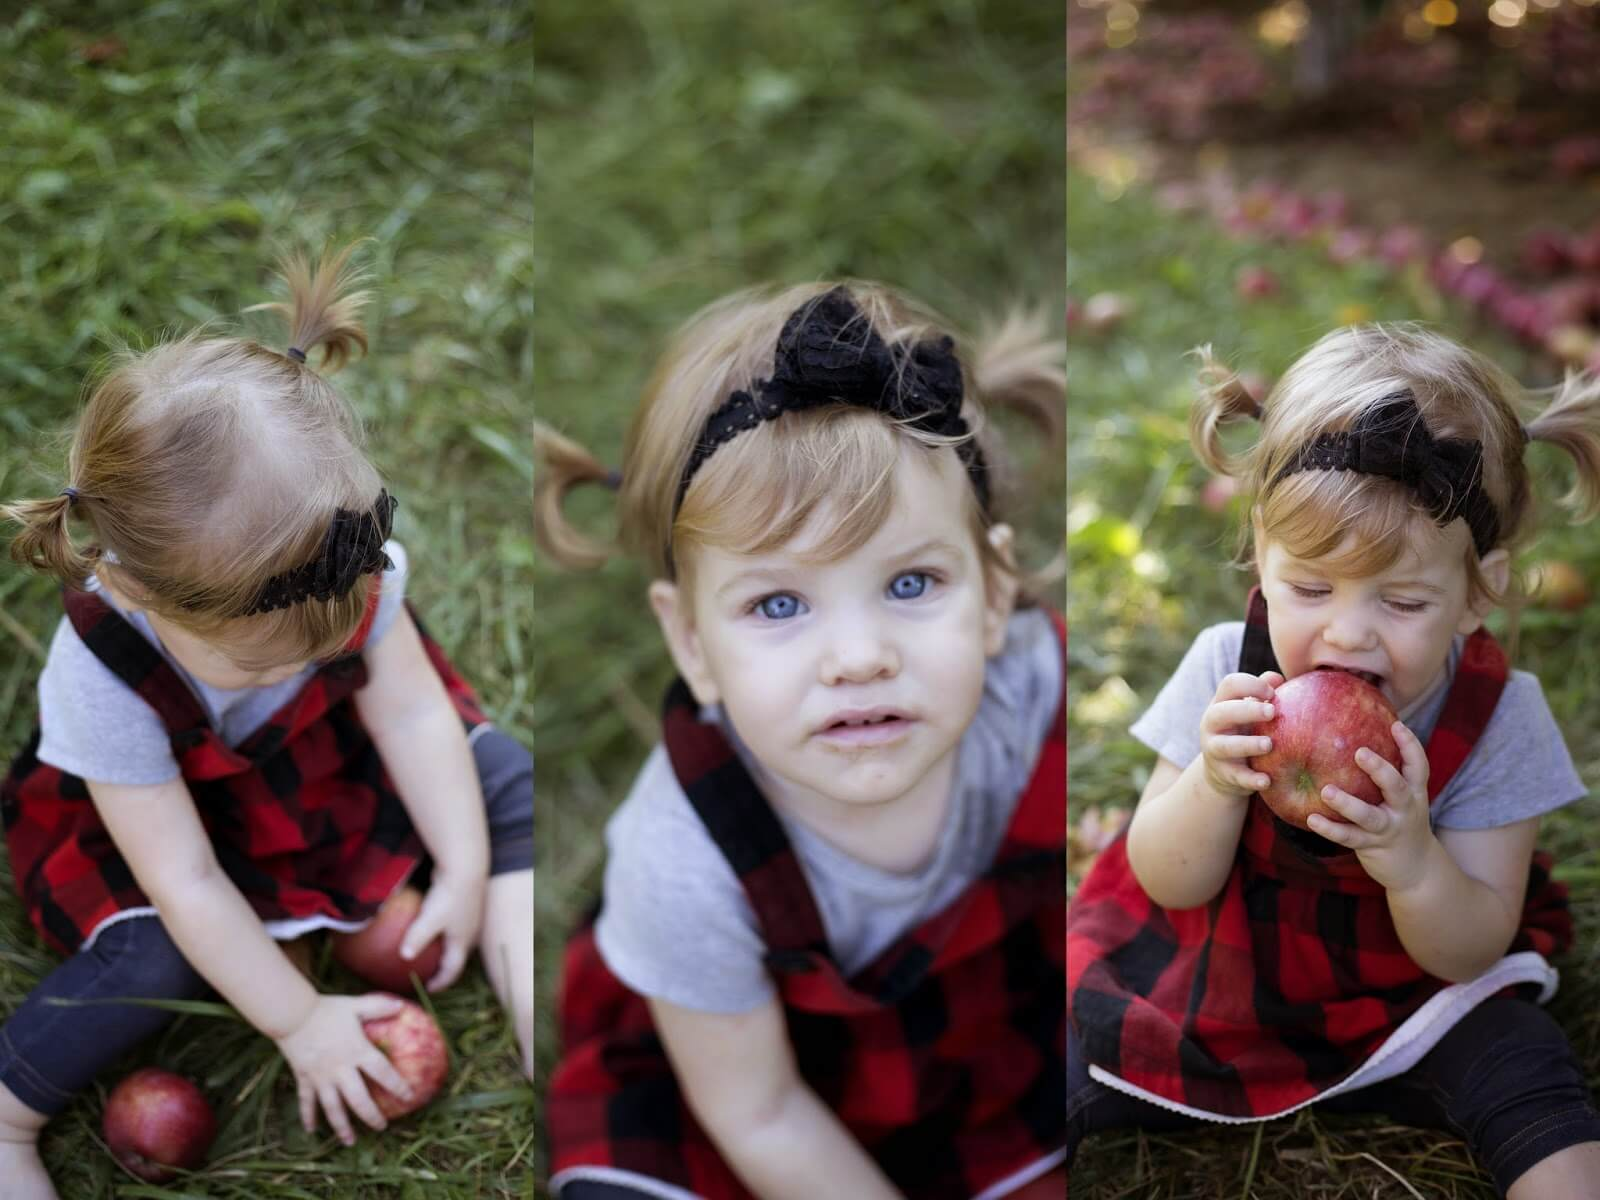 cute baby girl eating apple